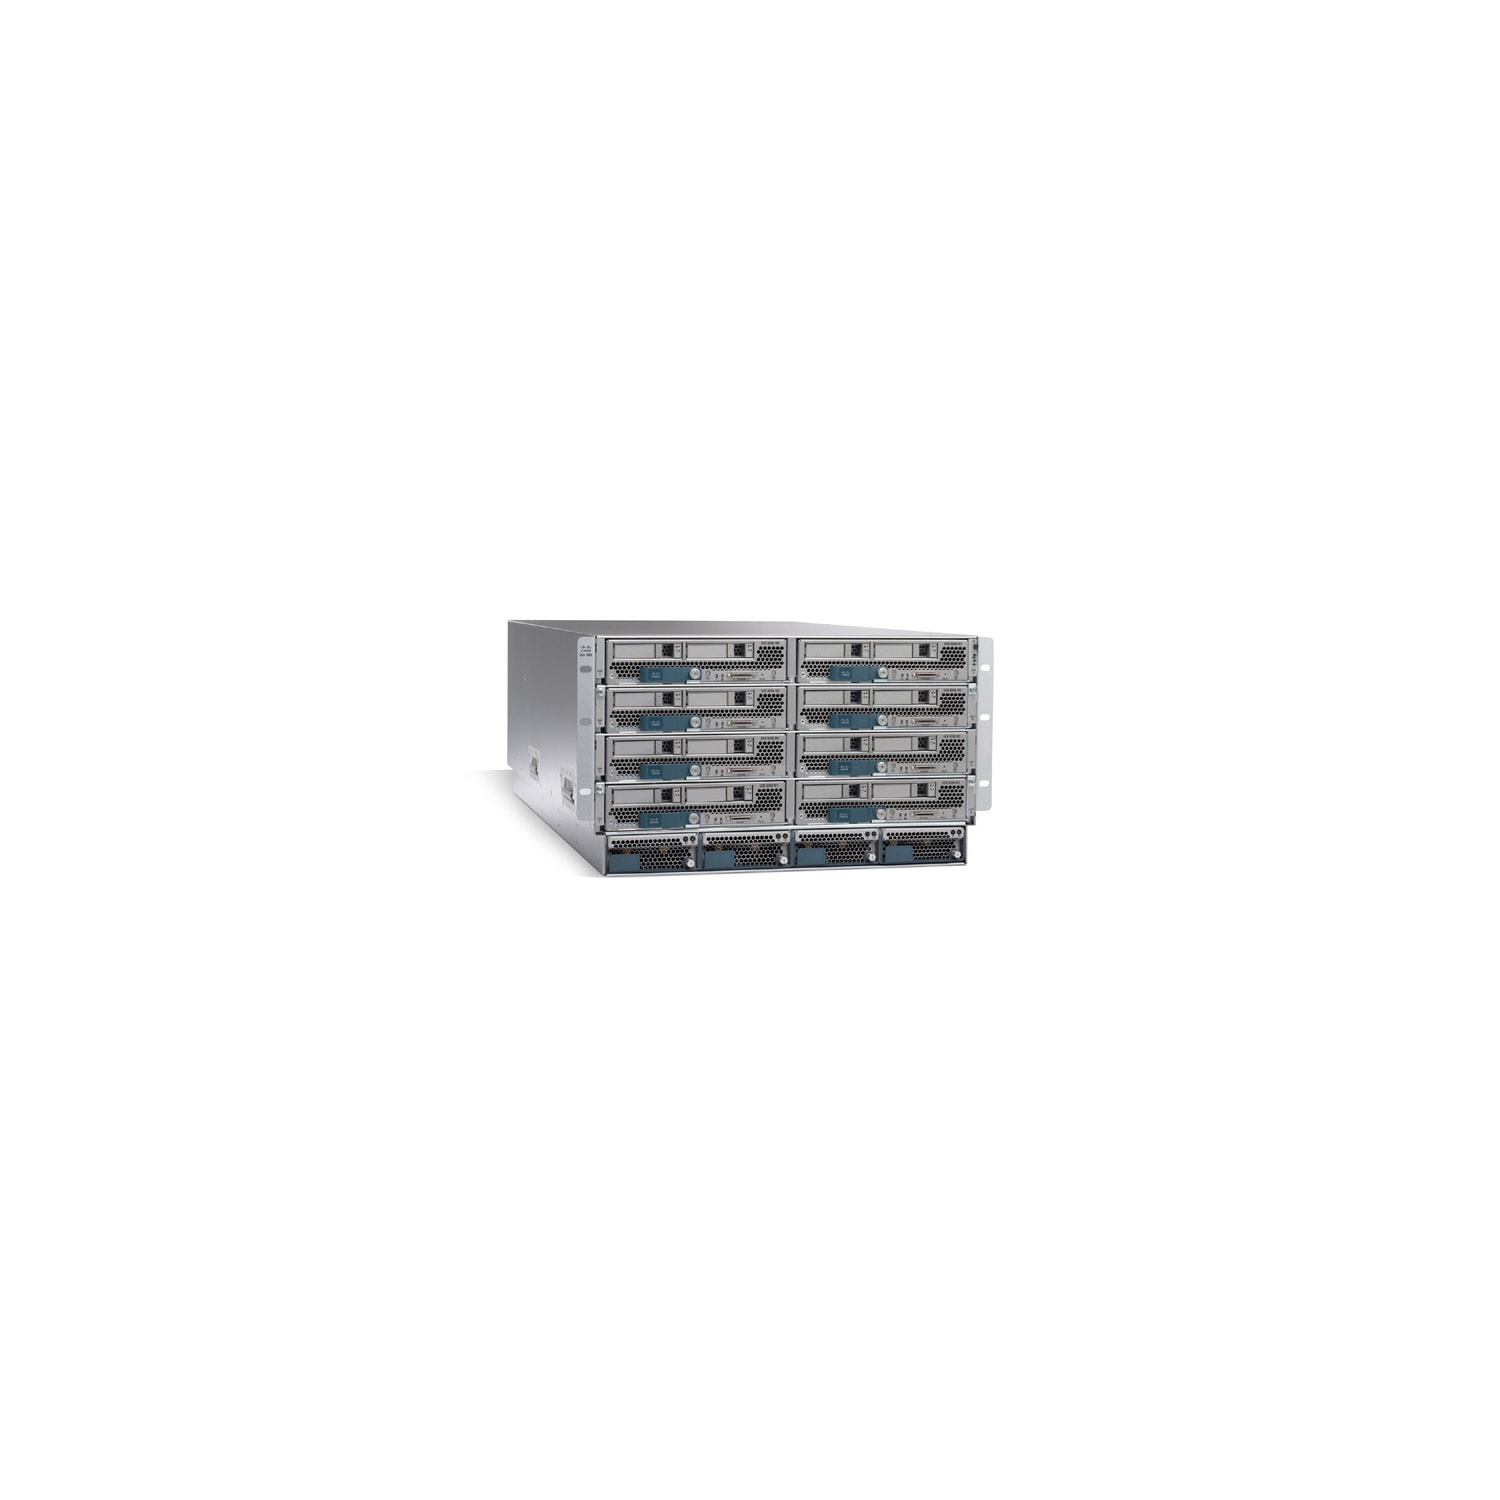 Buy Cisco UCS 5108 Blade Server Case - Rack-mountable | RTG